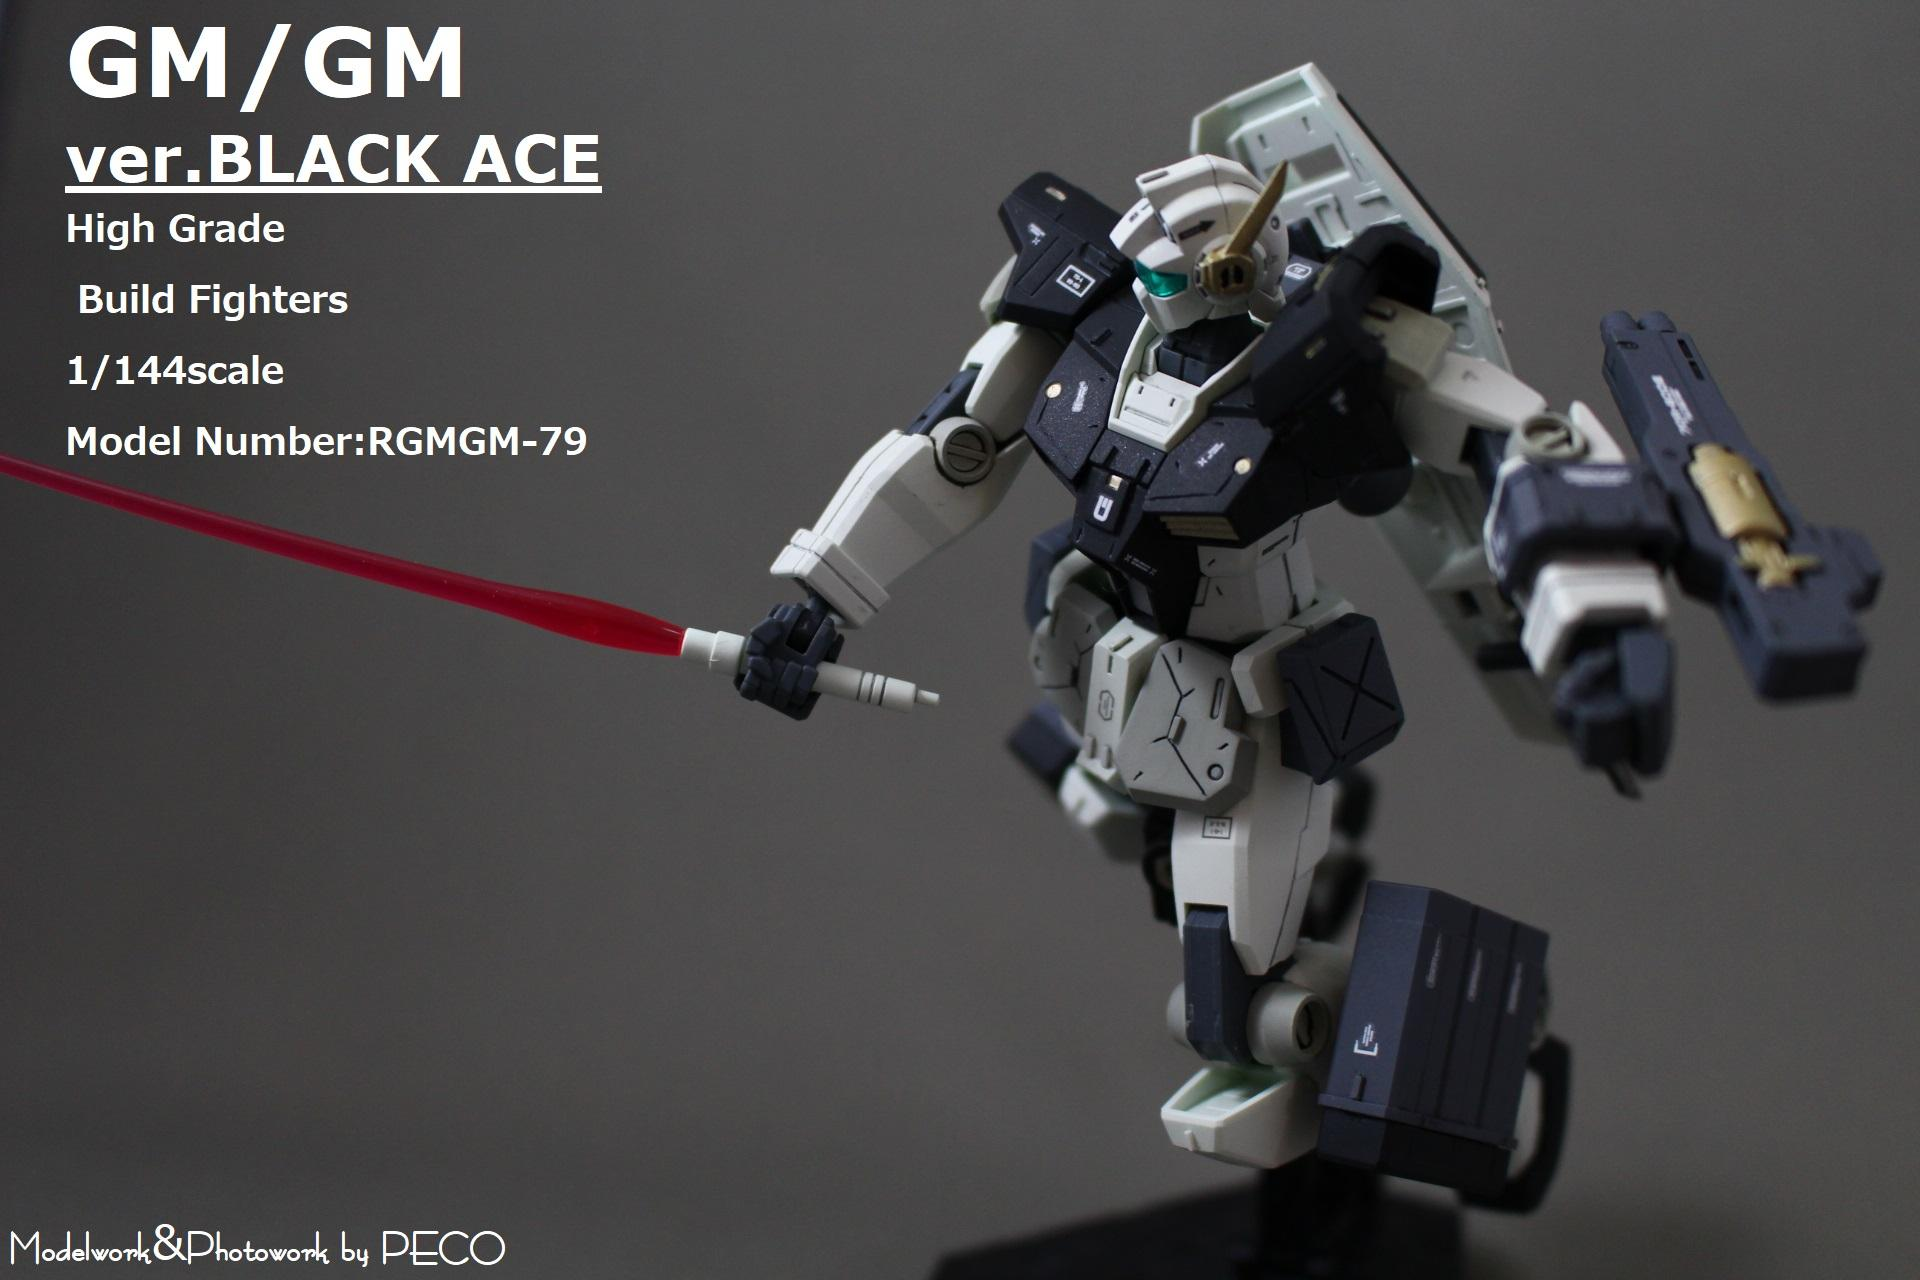 GMGM ver.BLACK ACEサムネイル1